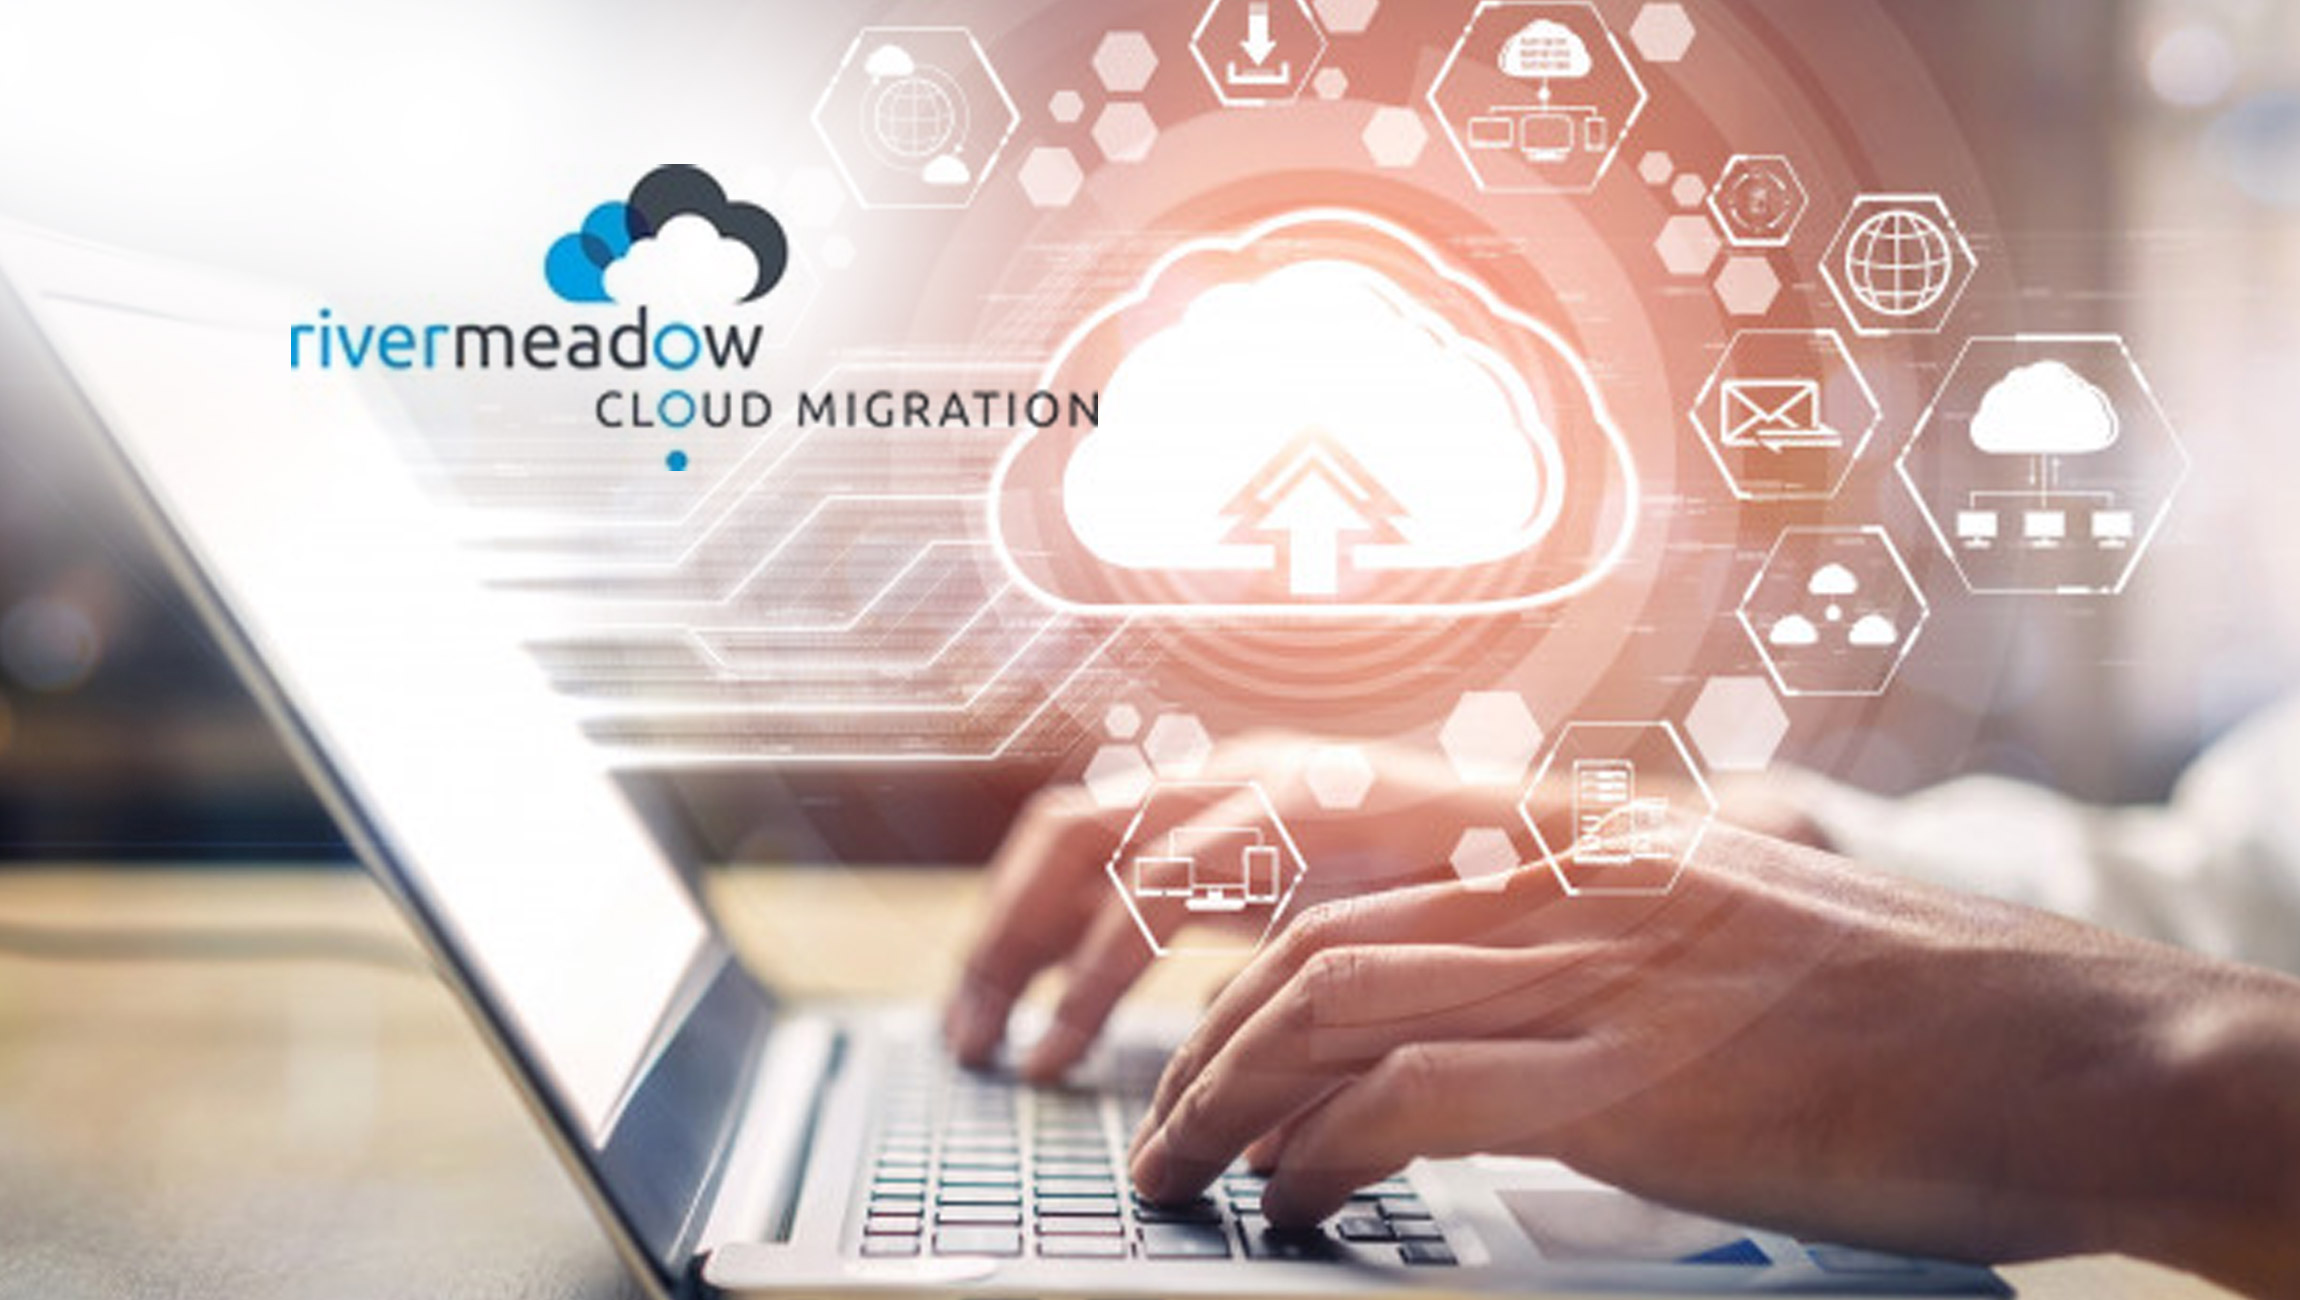 Mitel-selects-RiverMeadow-to-successfully-migrate-1_000-workloads-to-Google-Cloud-VMware-Engine-in-less-than-90-days